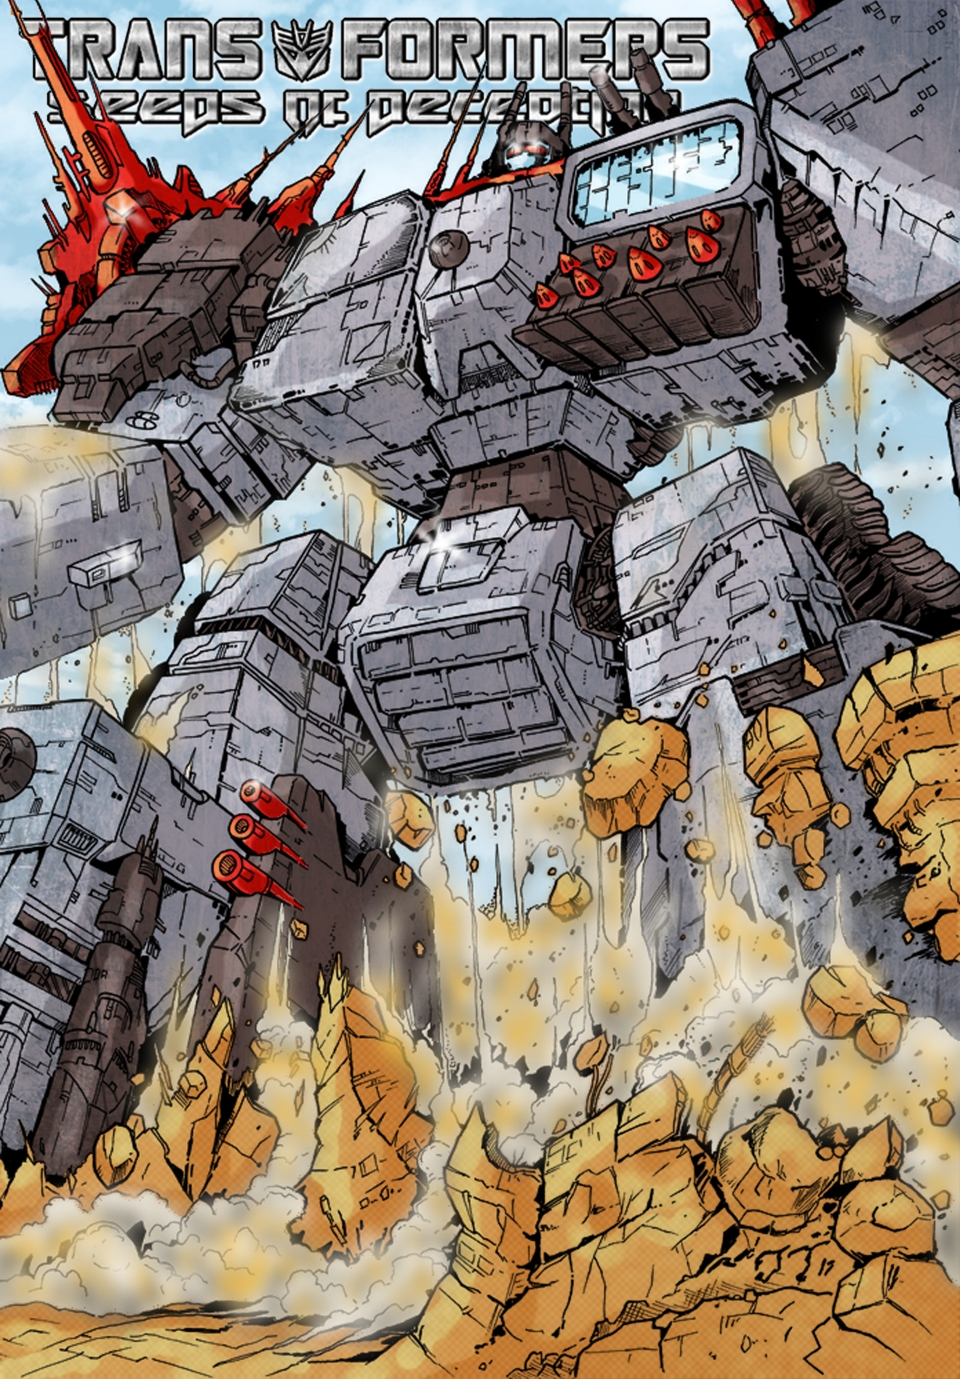 Metroplex bonus art - Emersion by Tf-SeedsOfDeception